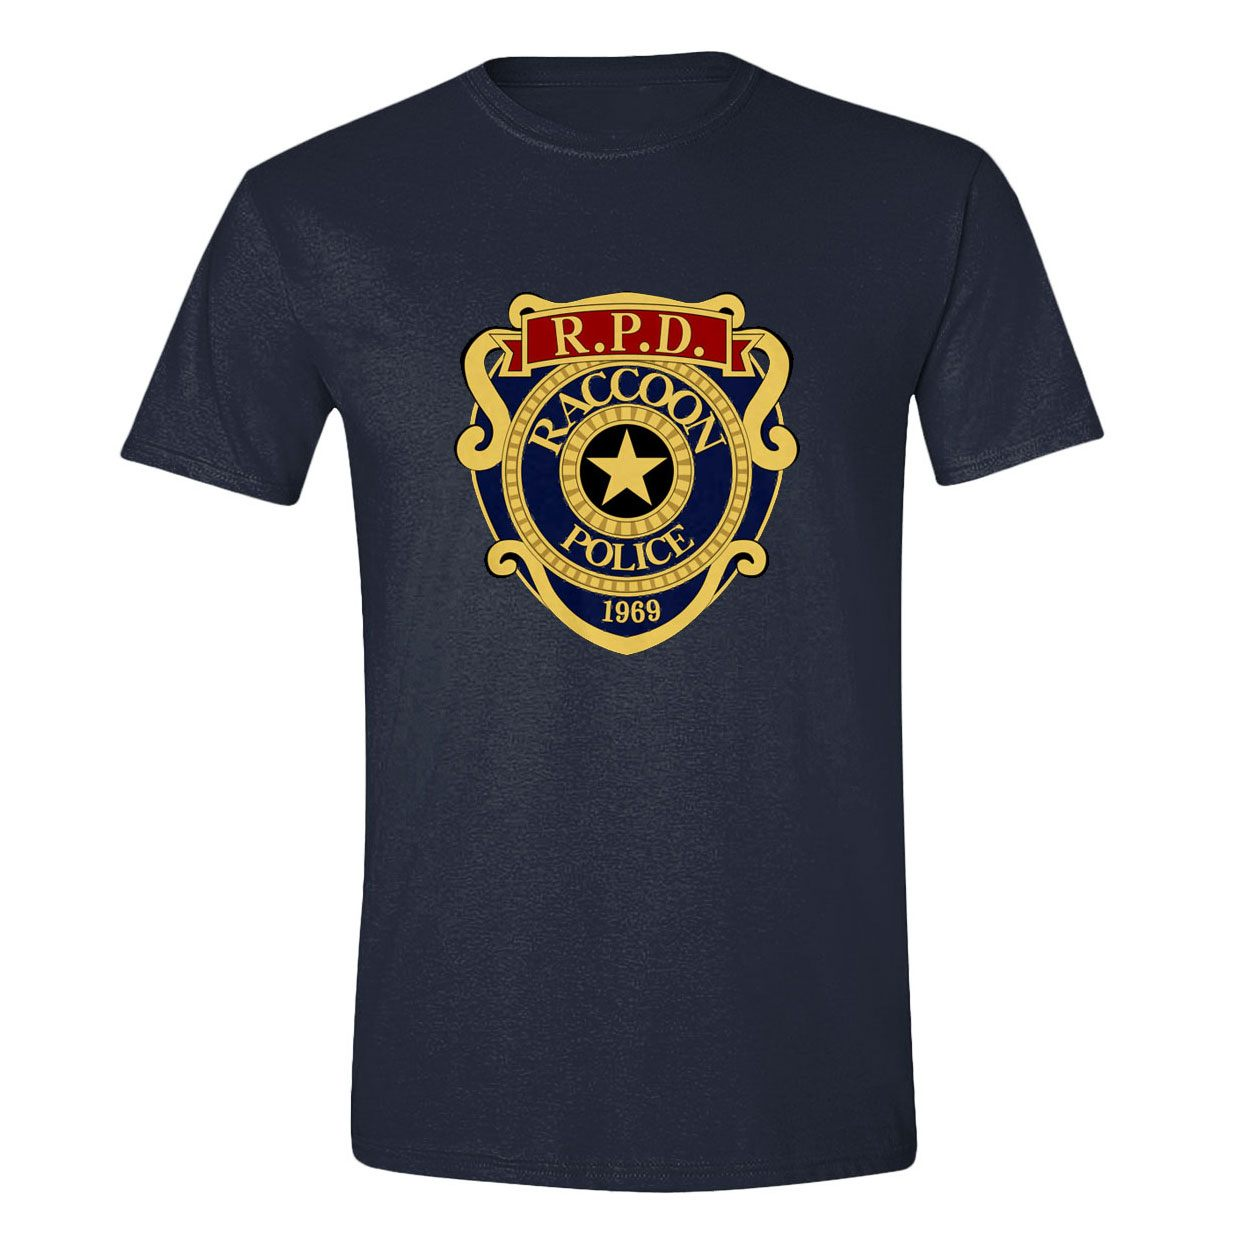 Resident Evil 2 T-Shirt R.P.D. Badge (XL)